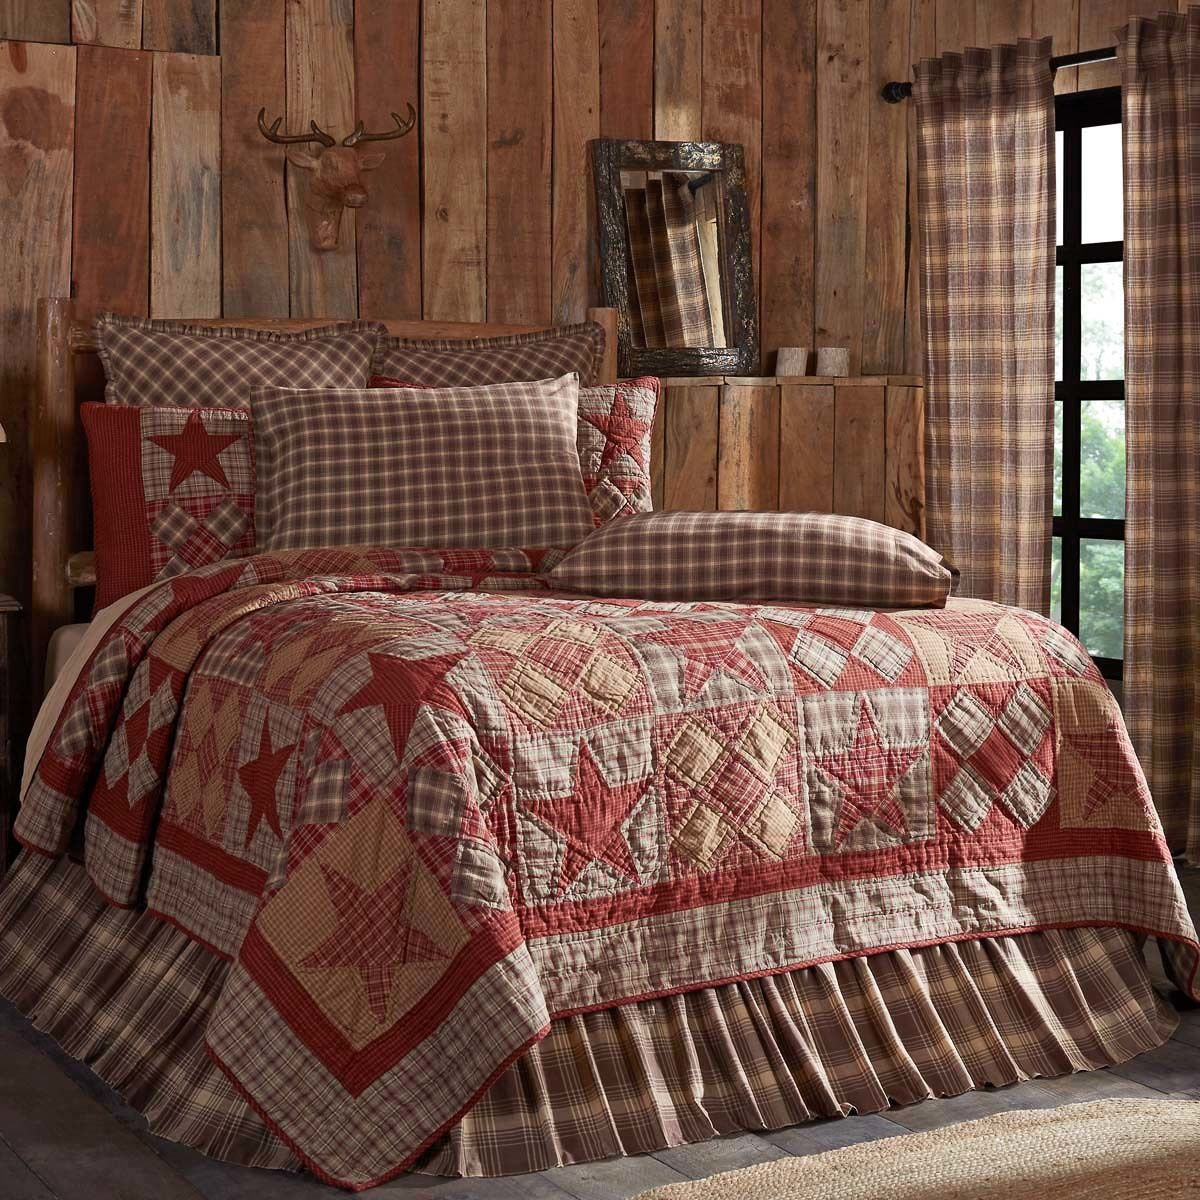 Dawson Star Oversized King Country Quilt 105x120 Sch Home Decor Styles Country House Decor Rustic Bedding